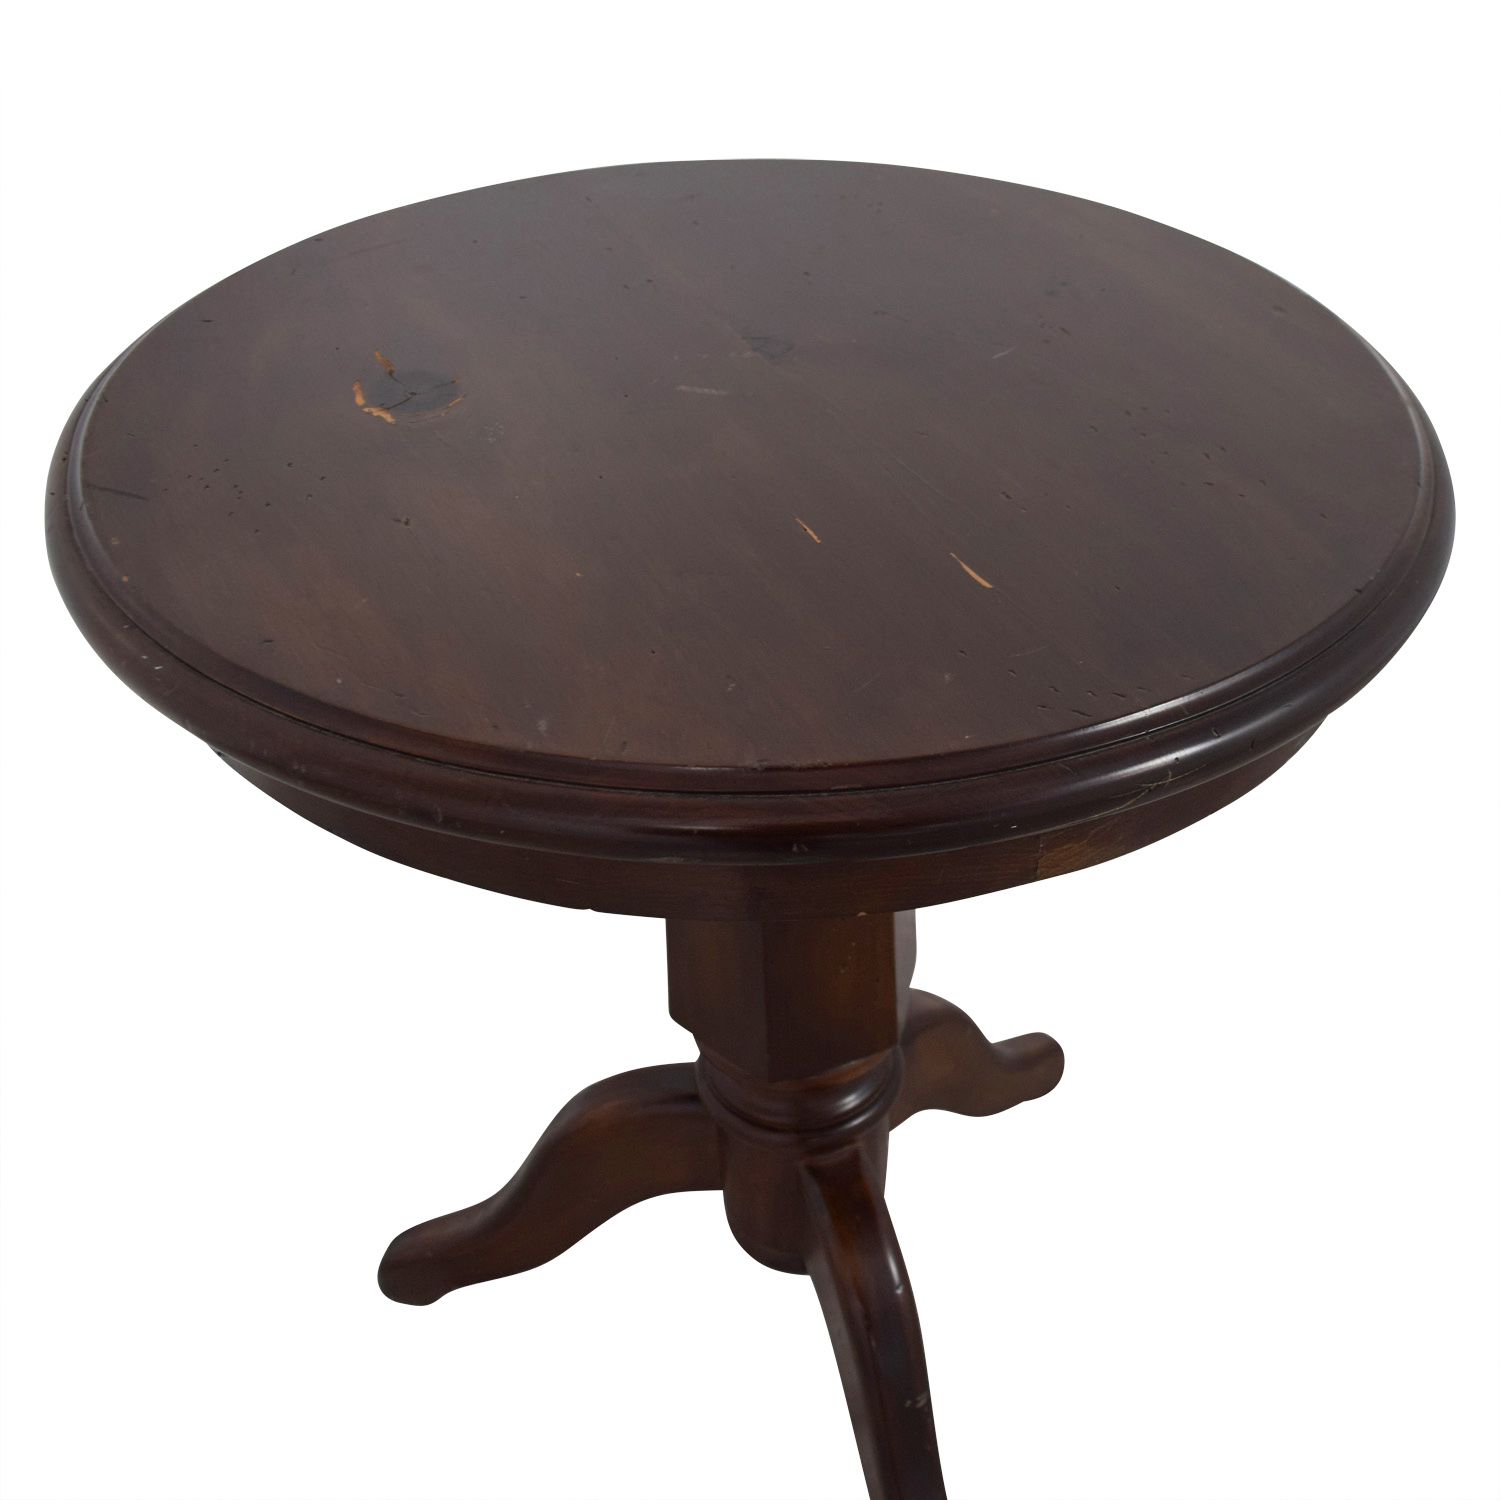 Furniture Masters Round Wooden End Table nyc